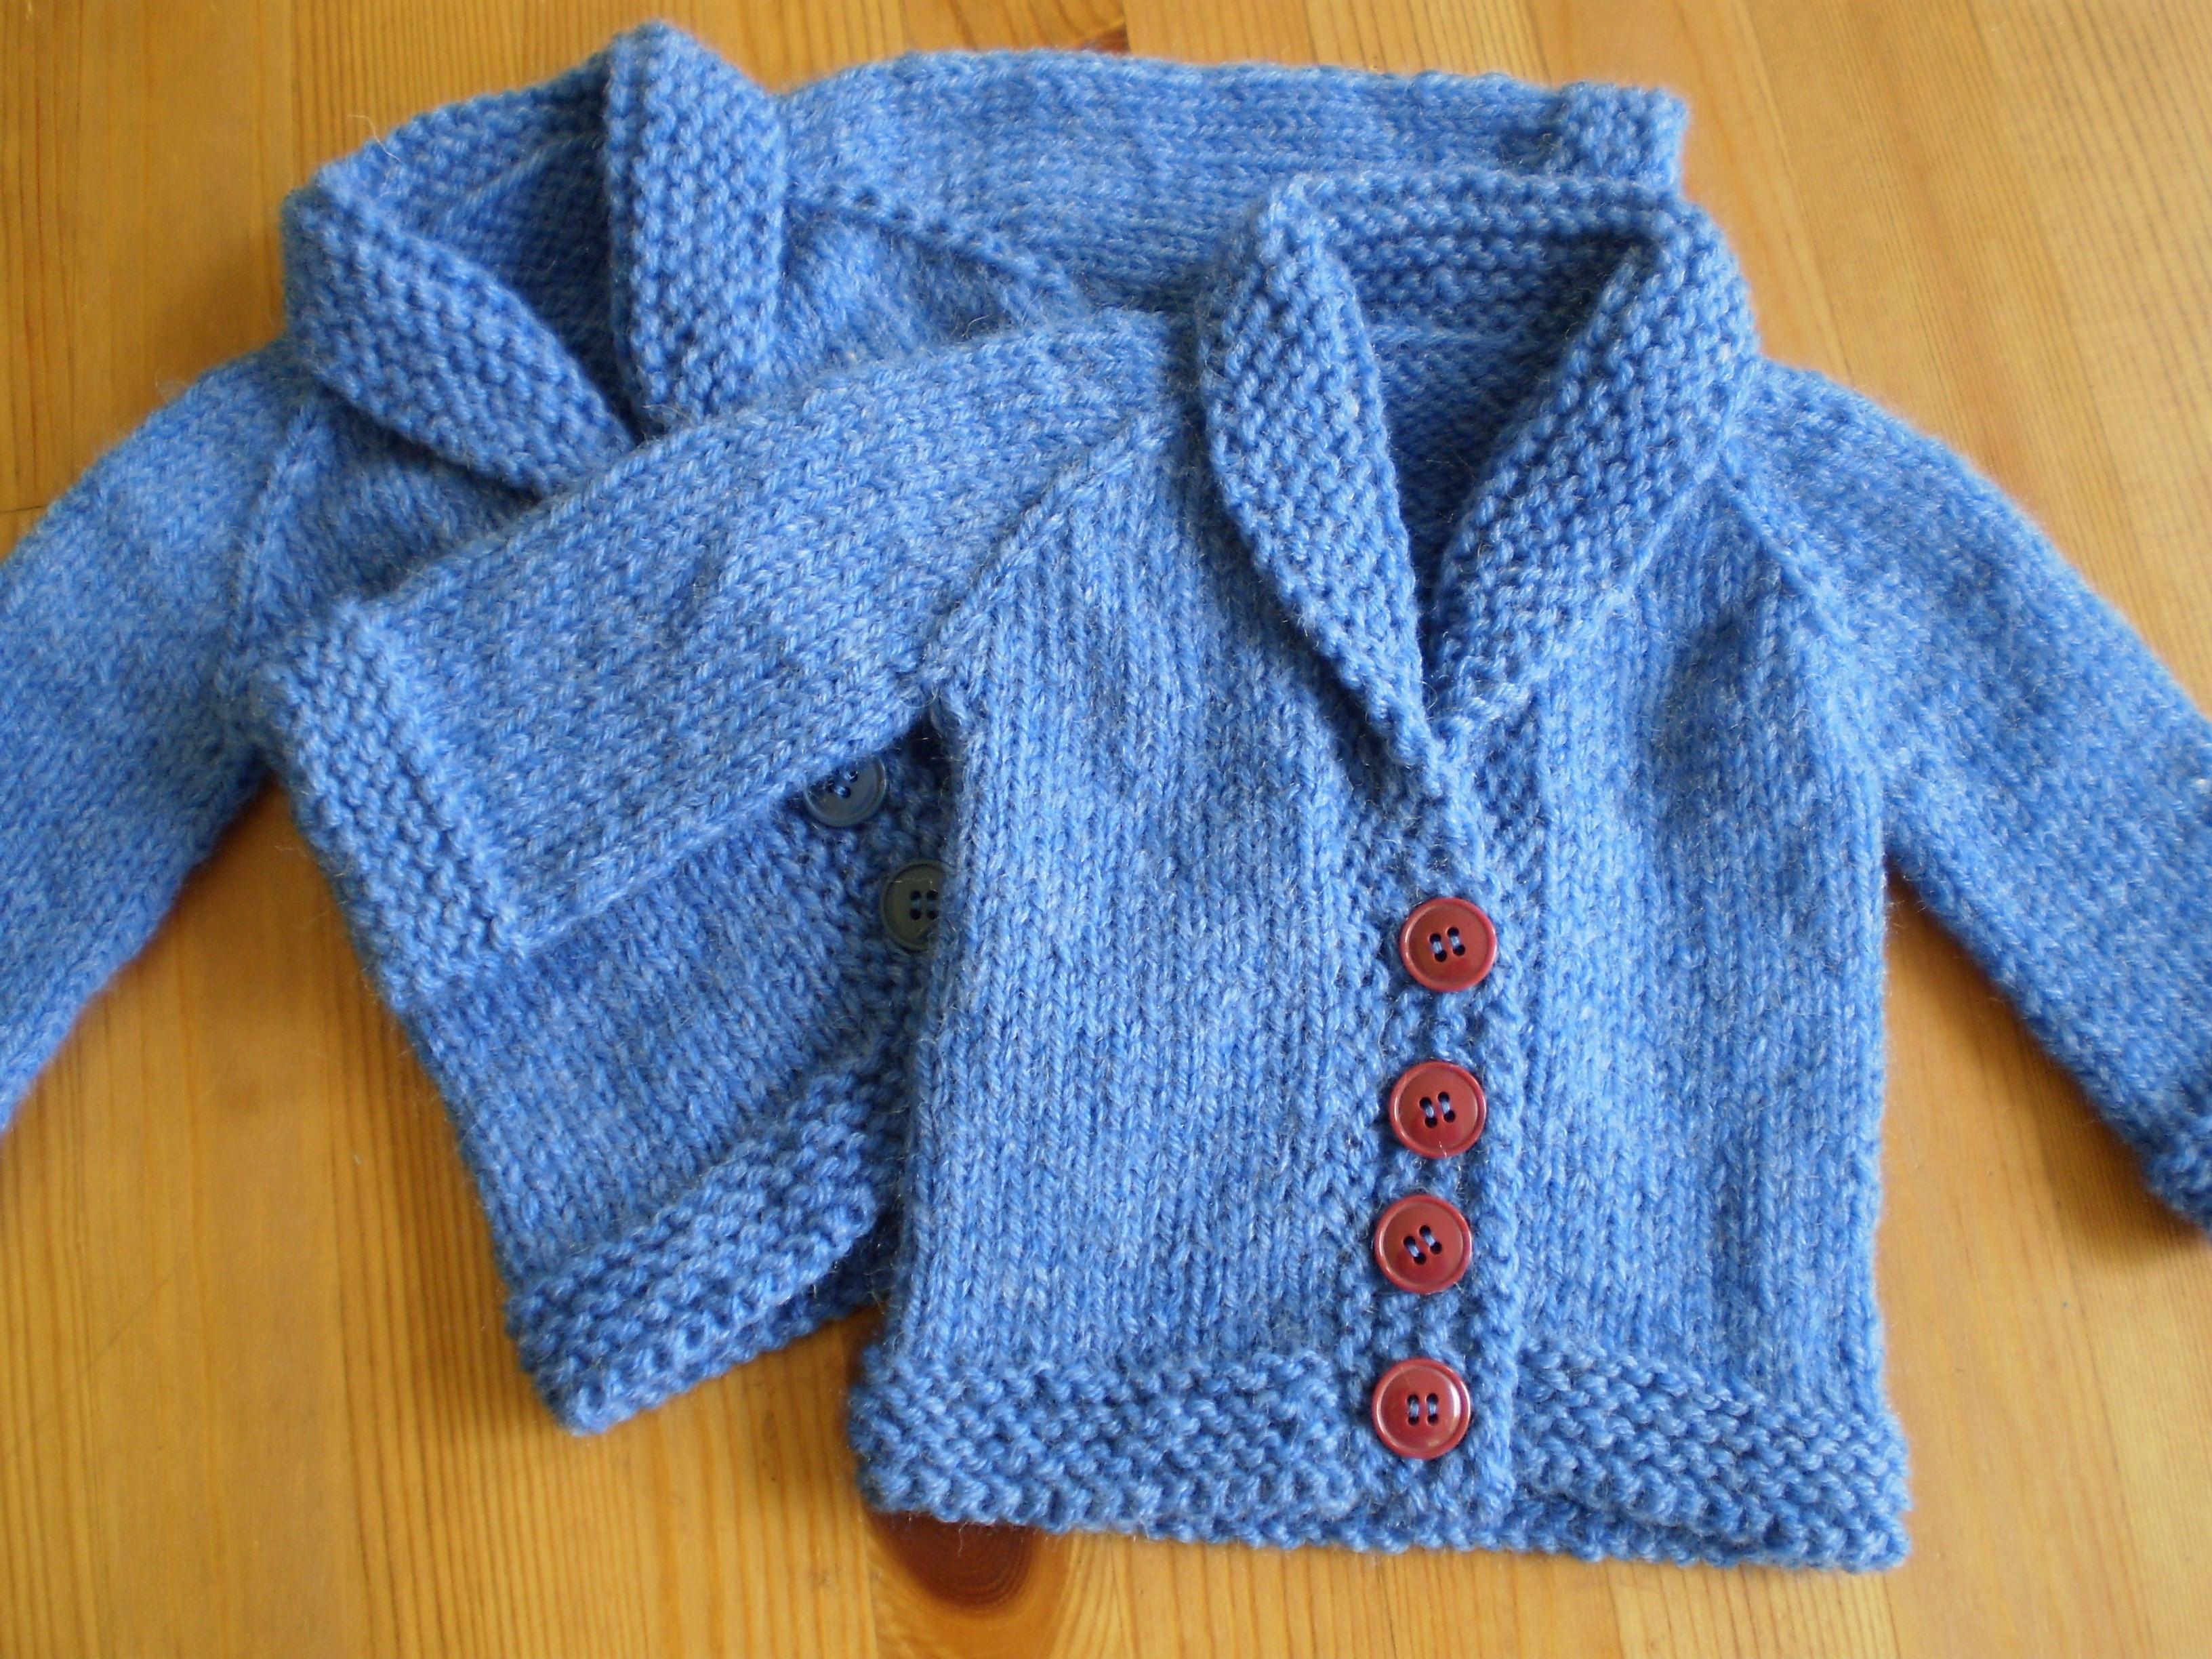 Elegant Easiest Baby Cardigan Knitting Pattern Cashmere Sweater Free Knitting Patterns for Baby Sweaters Of Superb 43 Pics Free Knitting Patterns for Baby Sweaters